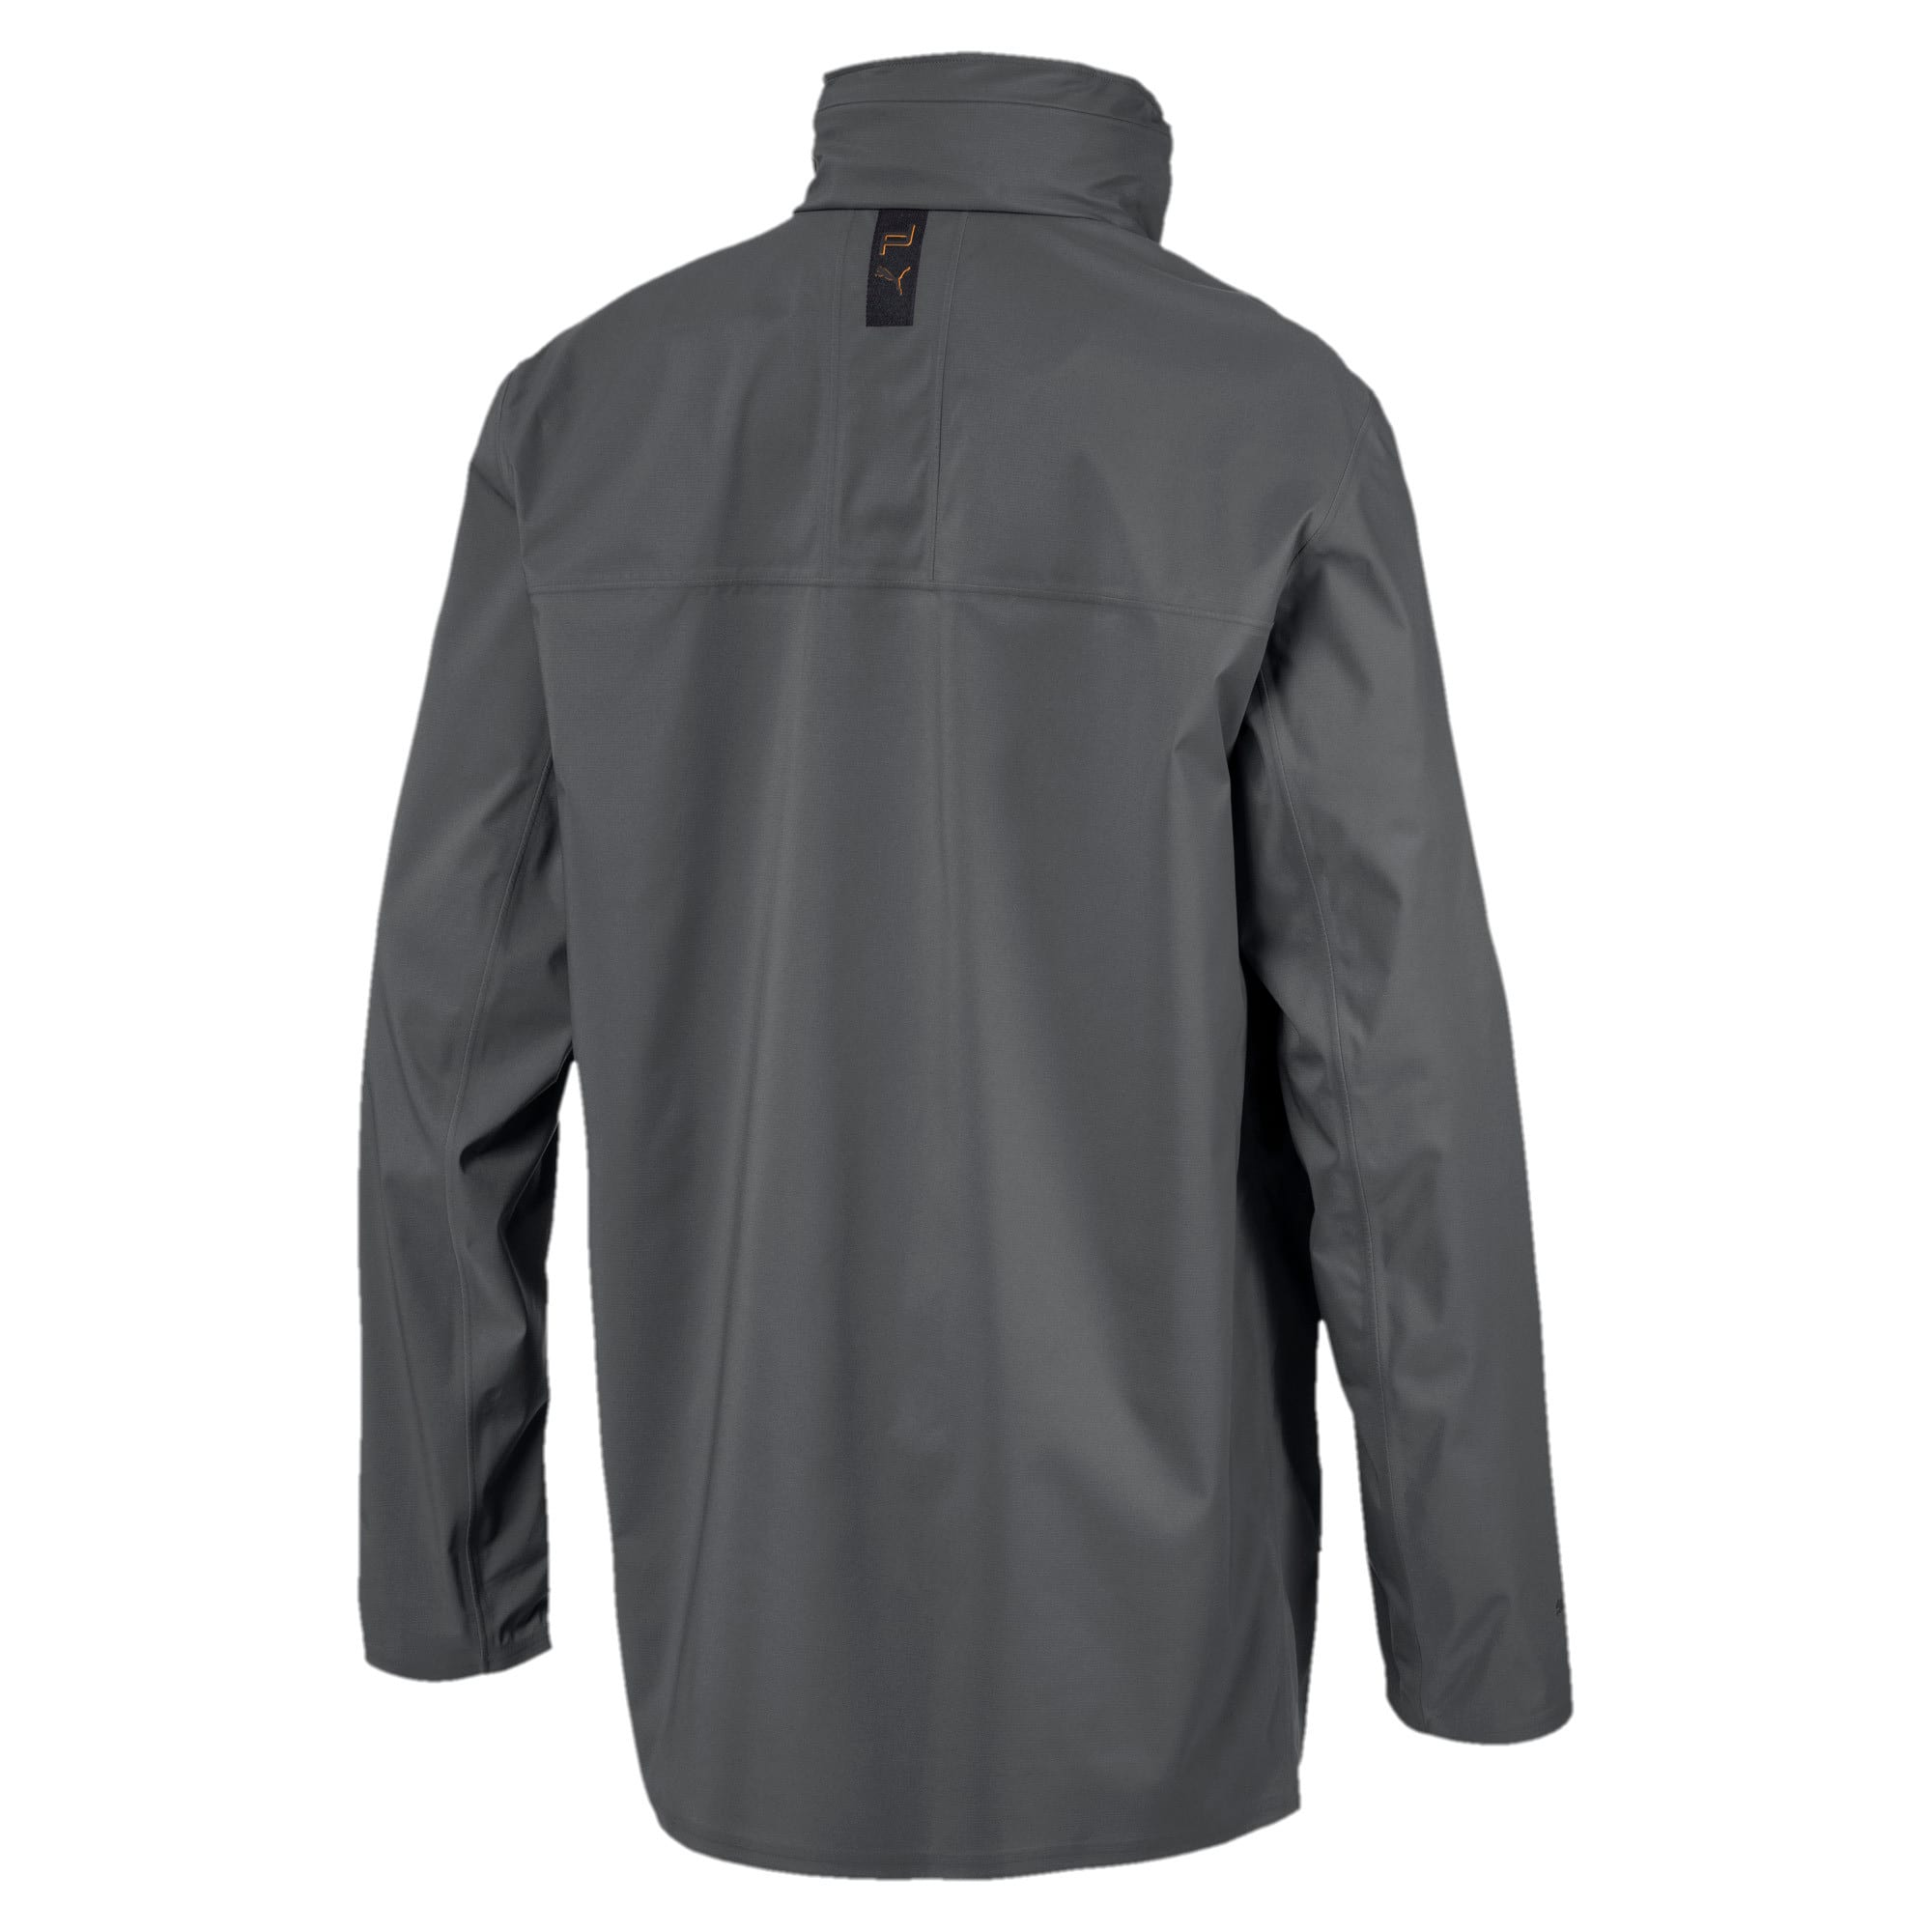 Thumbnail 2 of Blouson Porsche Design RCT pour homme, Asphalt, medium